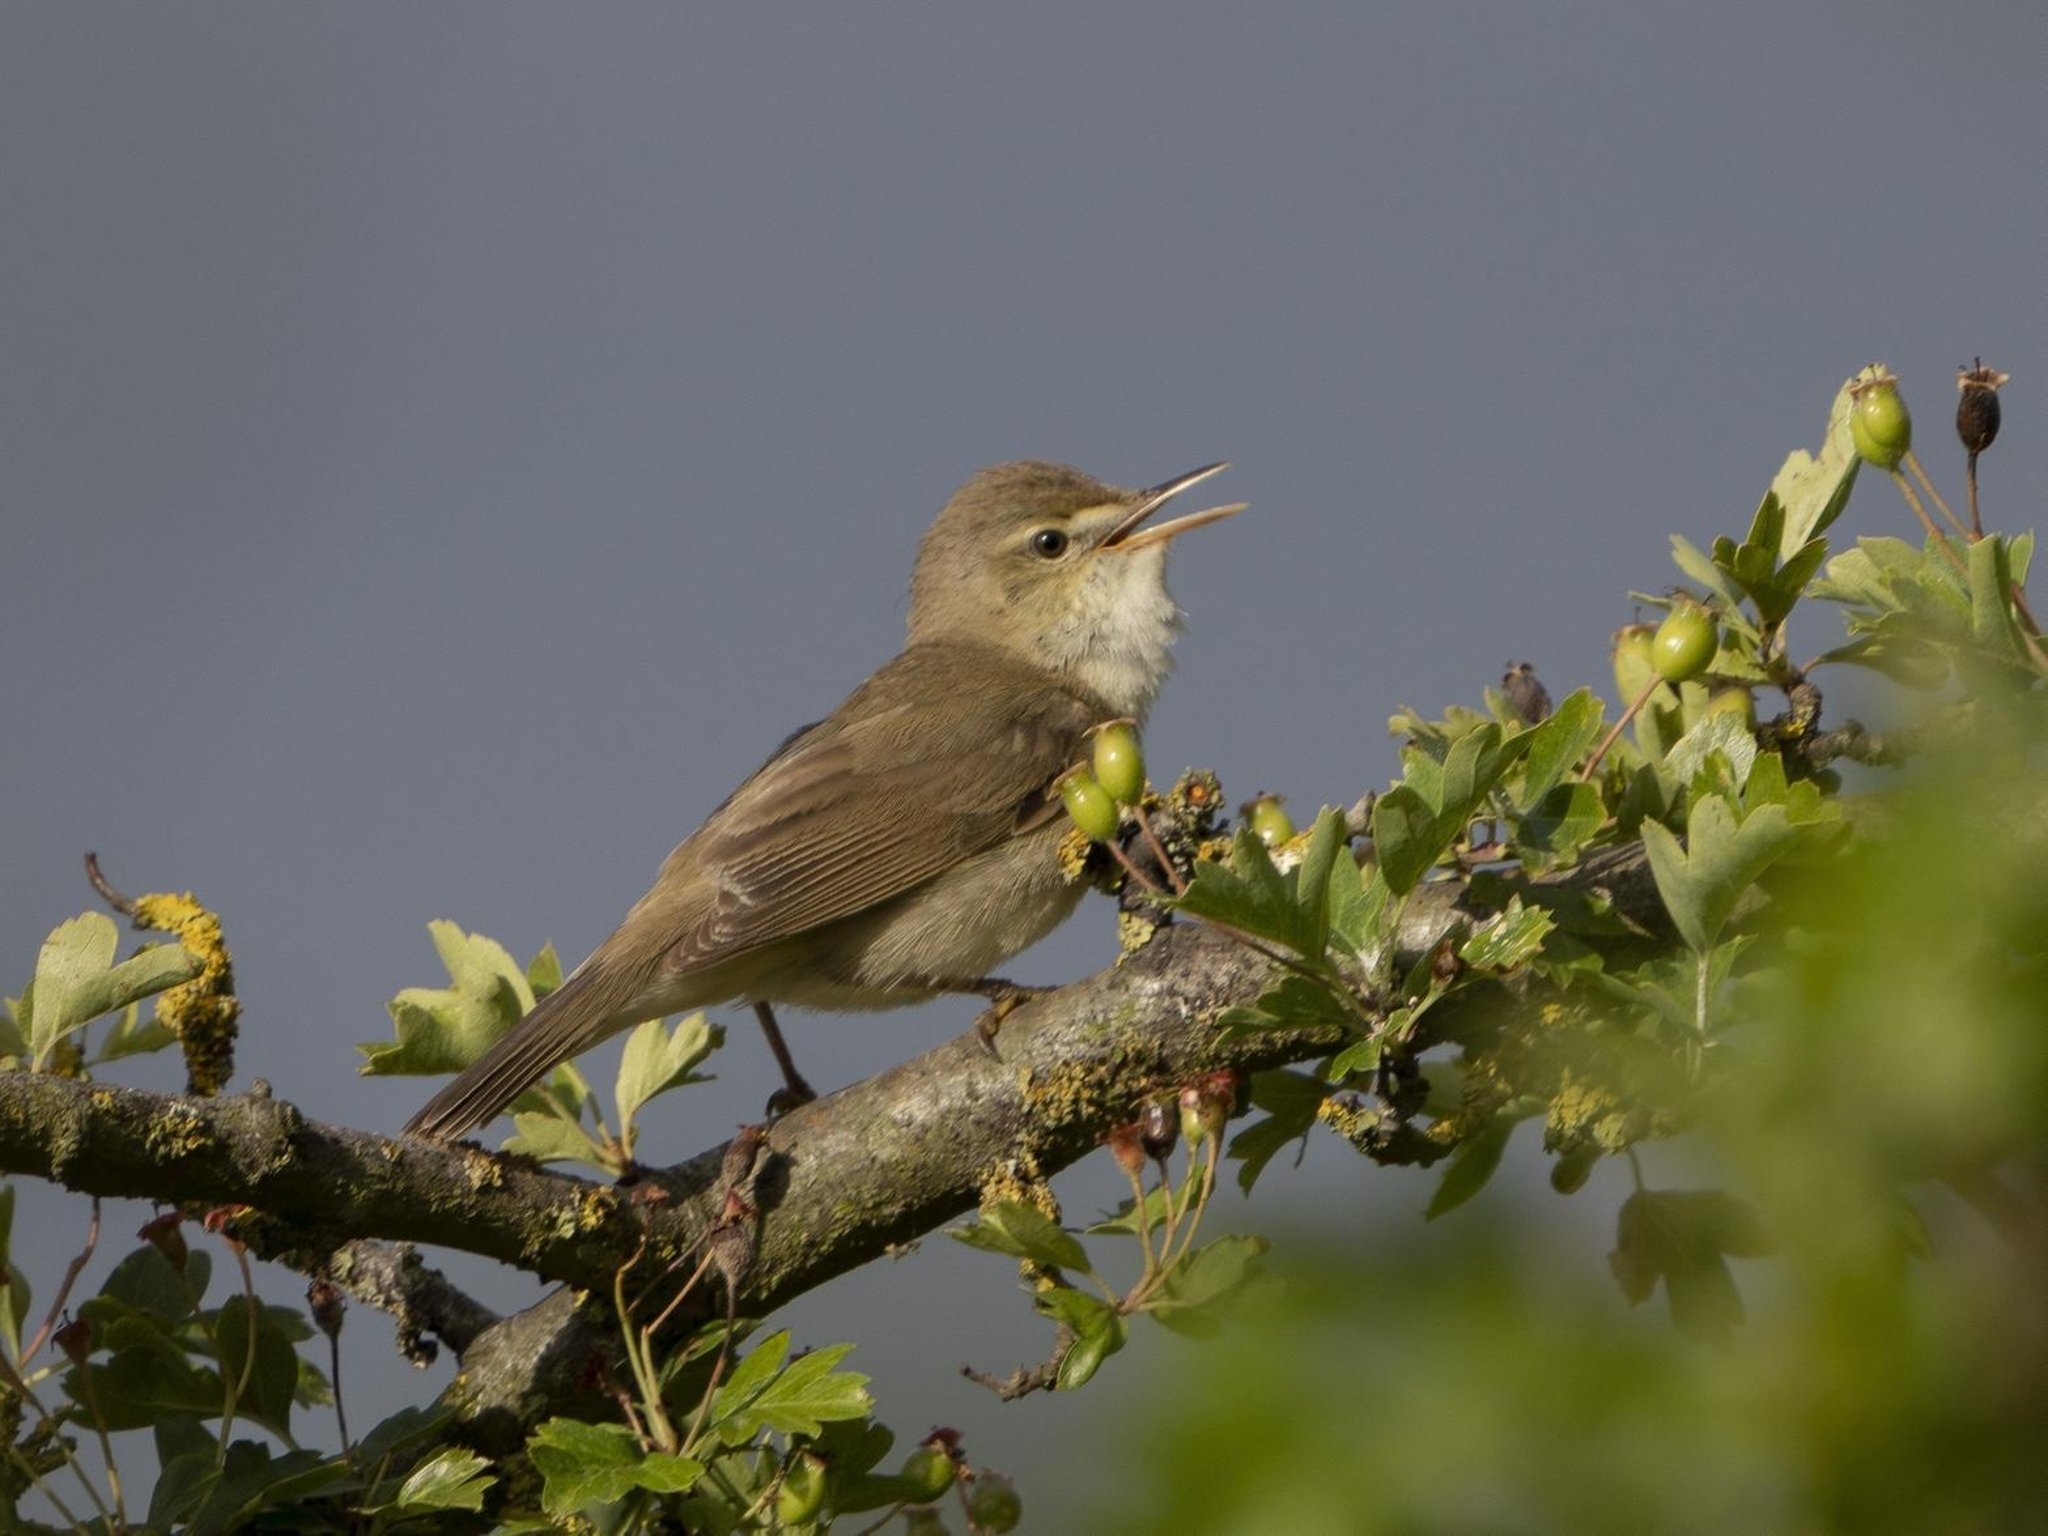 Rare Blyth S Reed Warbler Bird Spotted At Far Ings Nature Reserve In The Humber Estuary Yorkshire Post